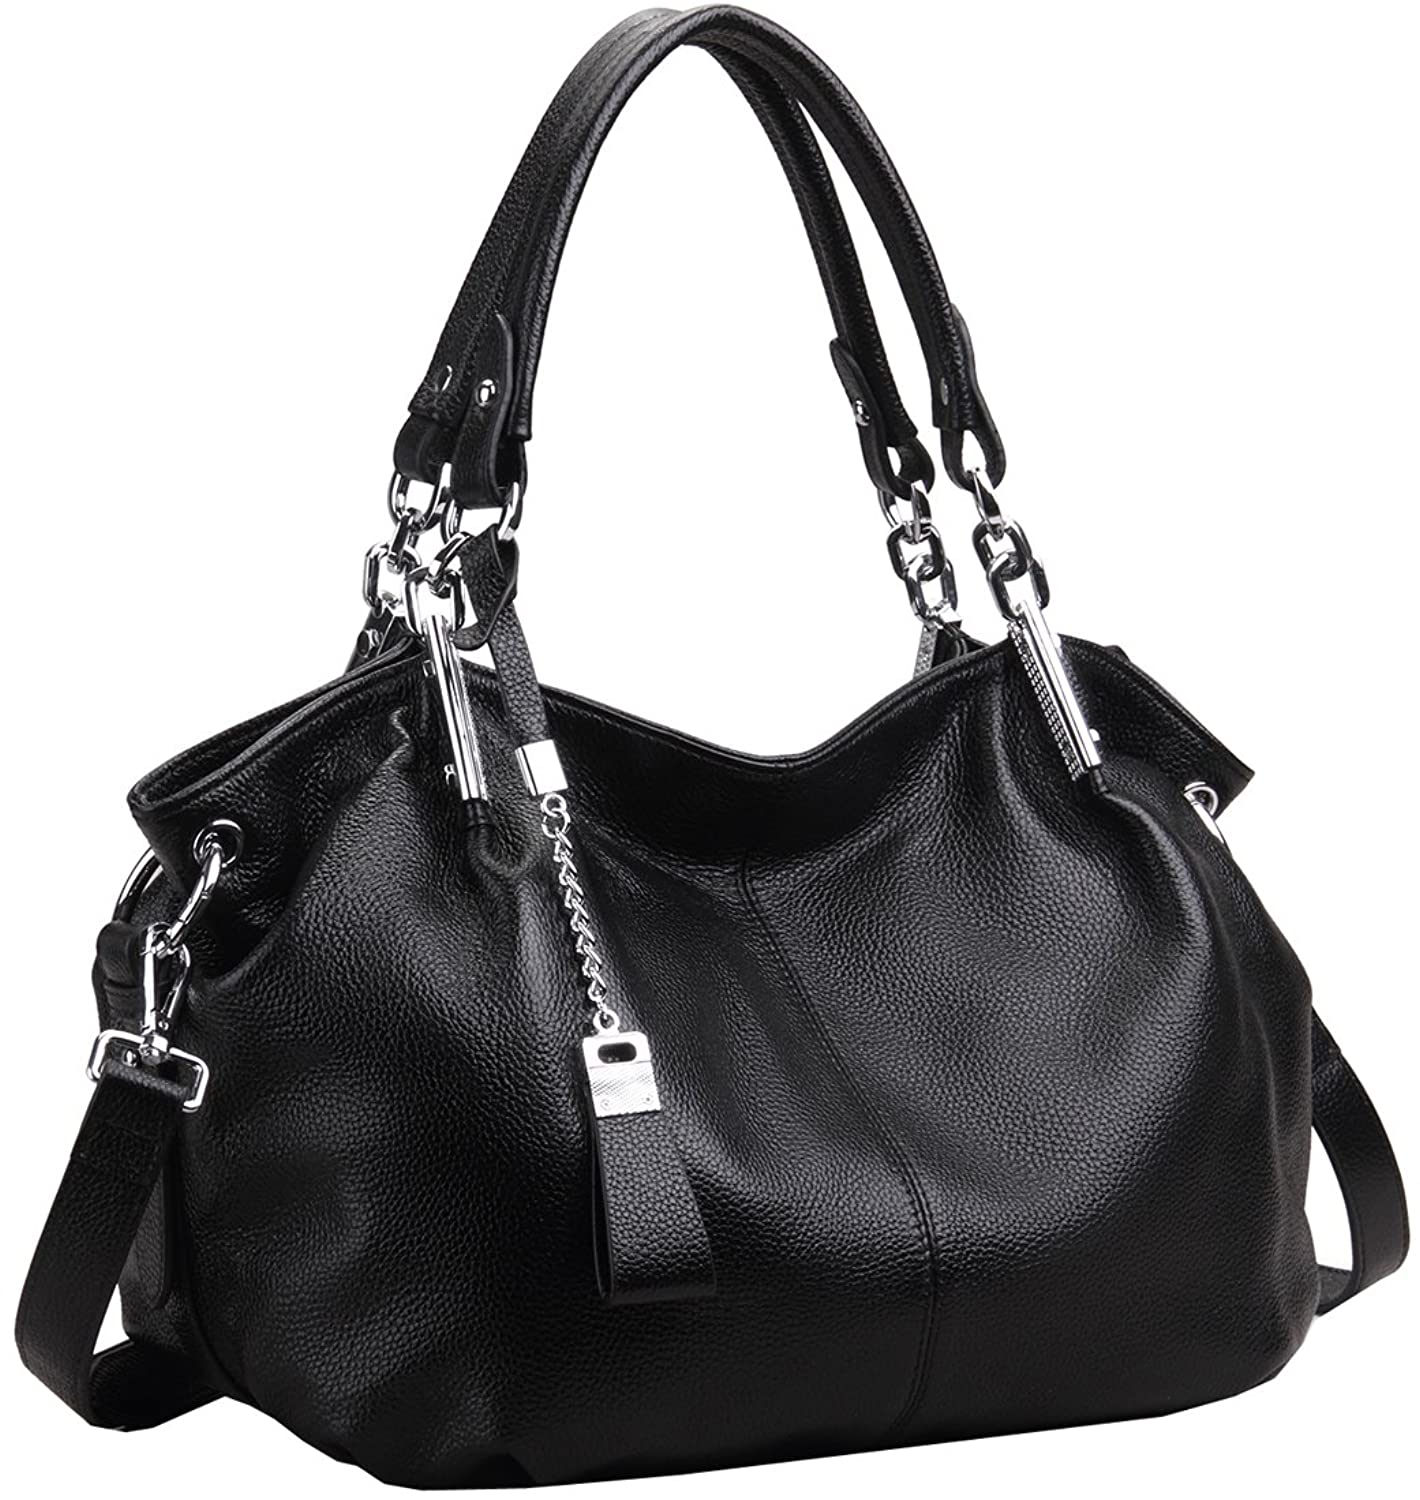 Black Hobo Bag With Silver Hardware | Bags More